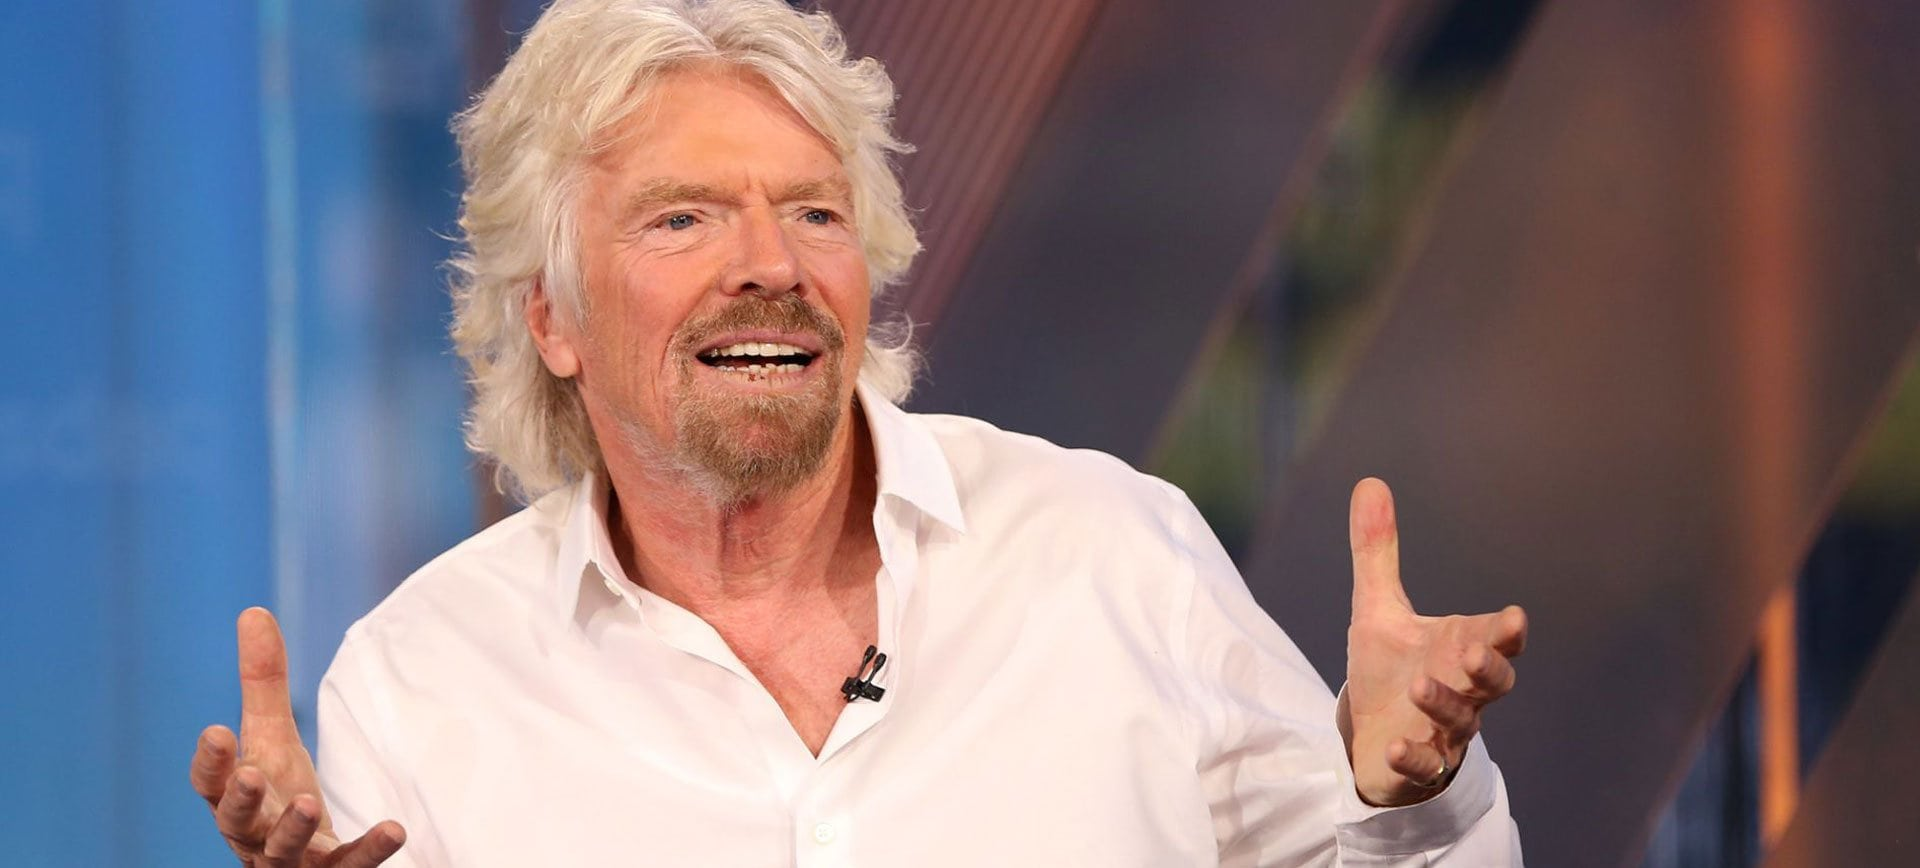 "8 things I learned from Richard Branson"" is locked	 8 things I learned from Richard Branson"